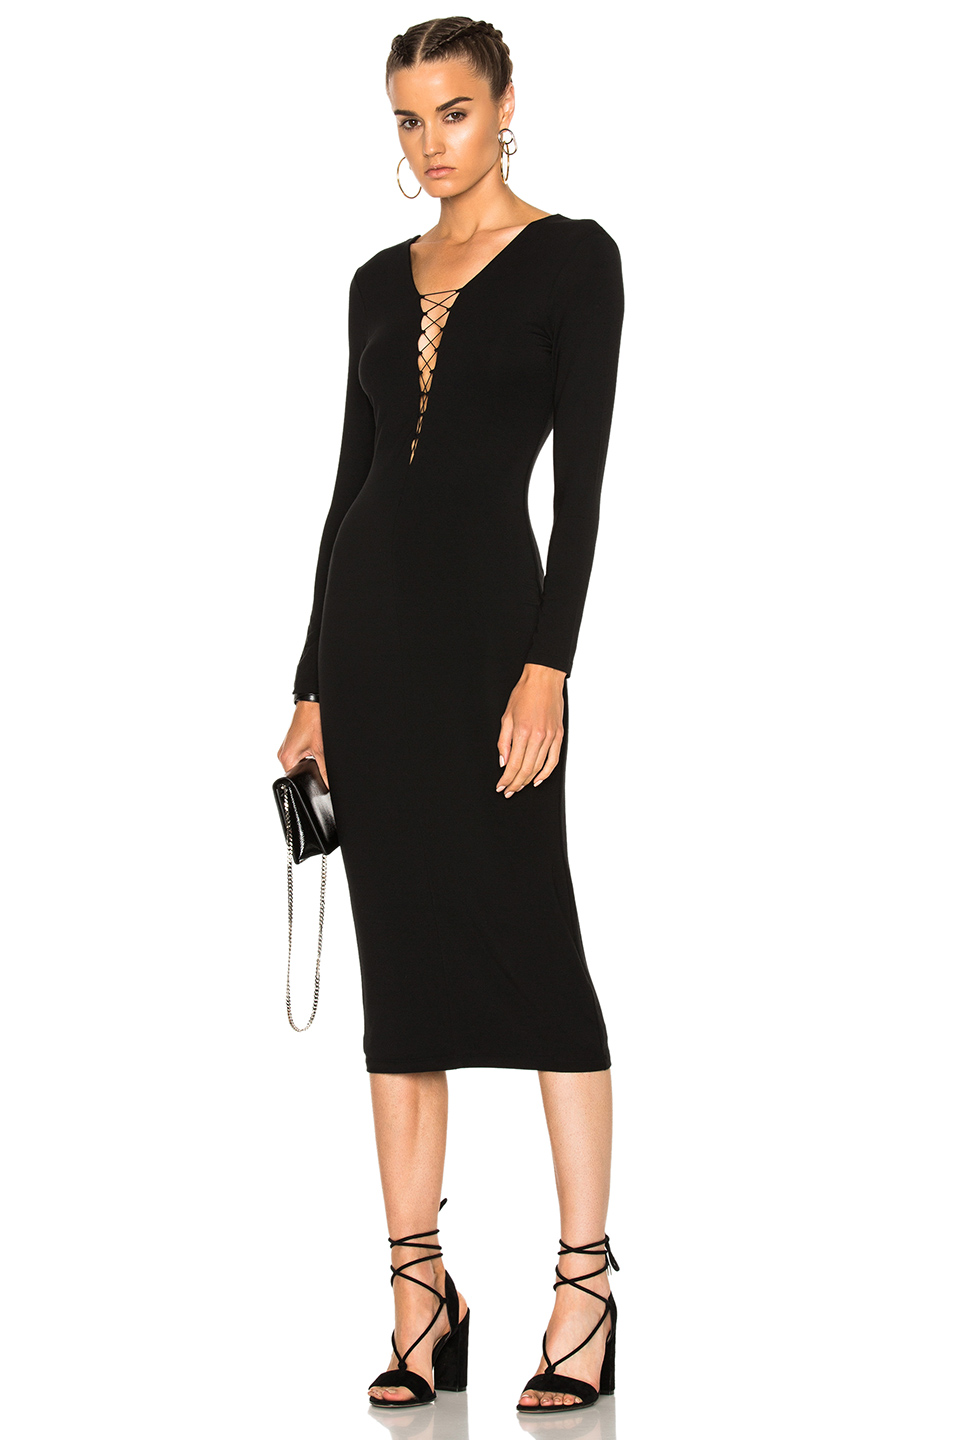 T by Alexander Wang Micro Modal Spandex Lace Up Midi Long Sleeve Dress in Black